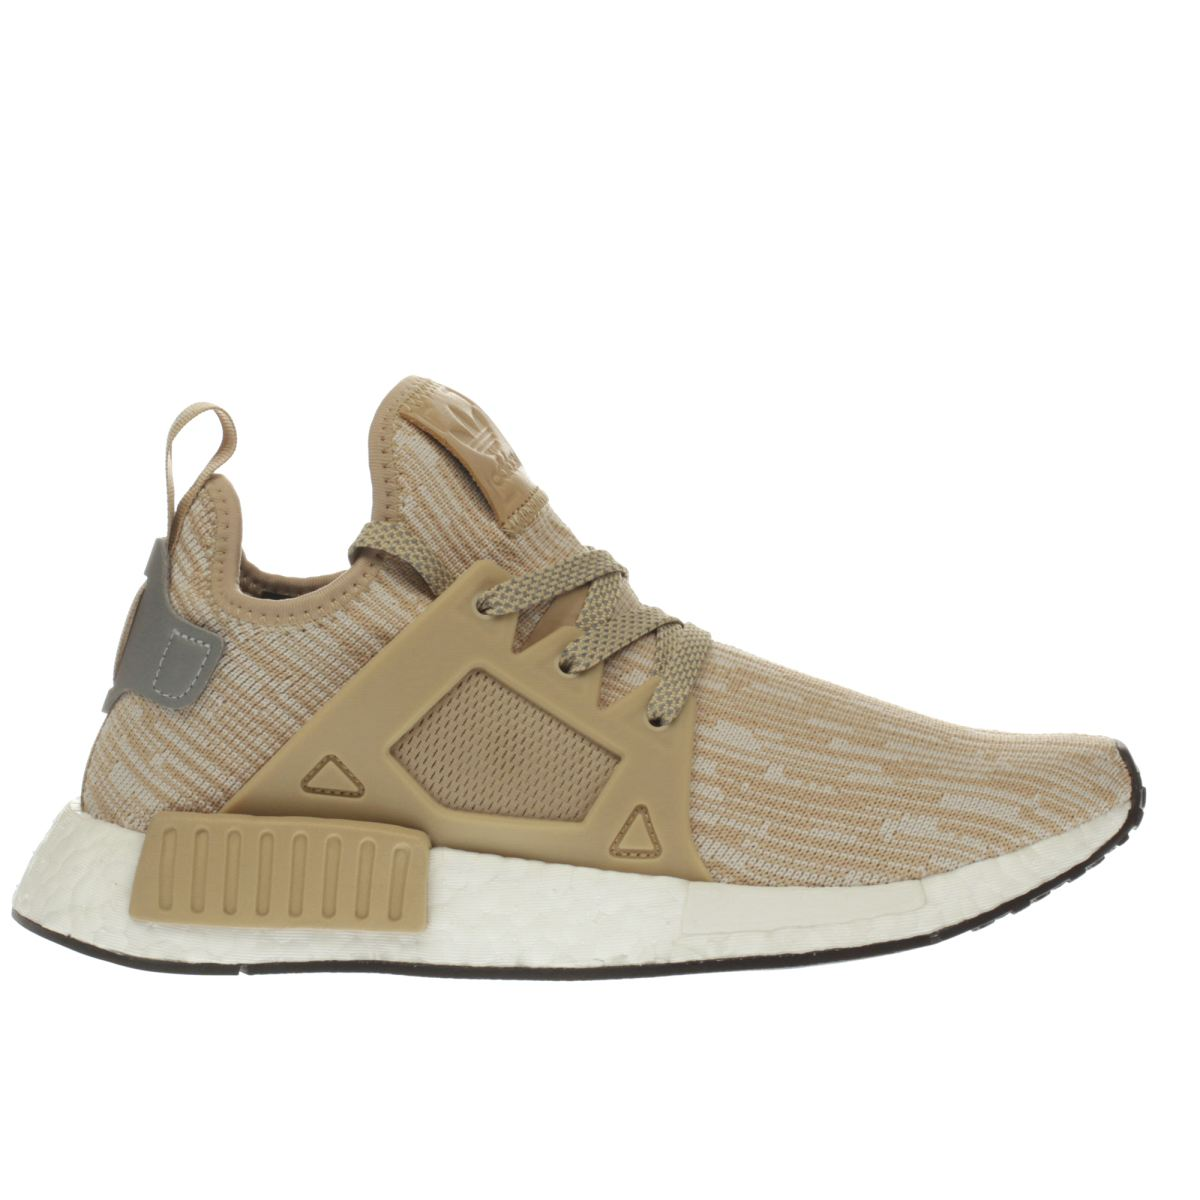 Cheap NMD Trail PK, Cheapest Adidas NMD Trail PK Boost Sale 2017